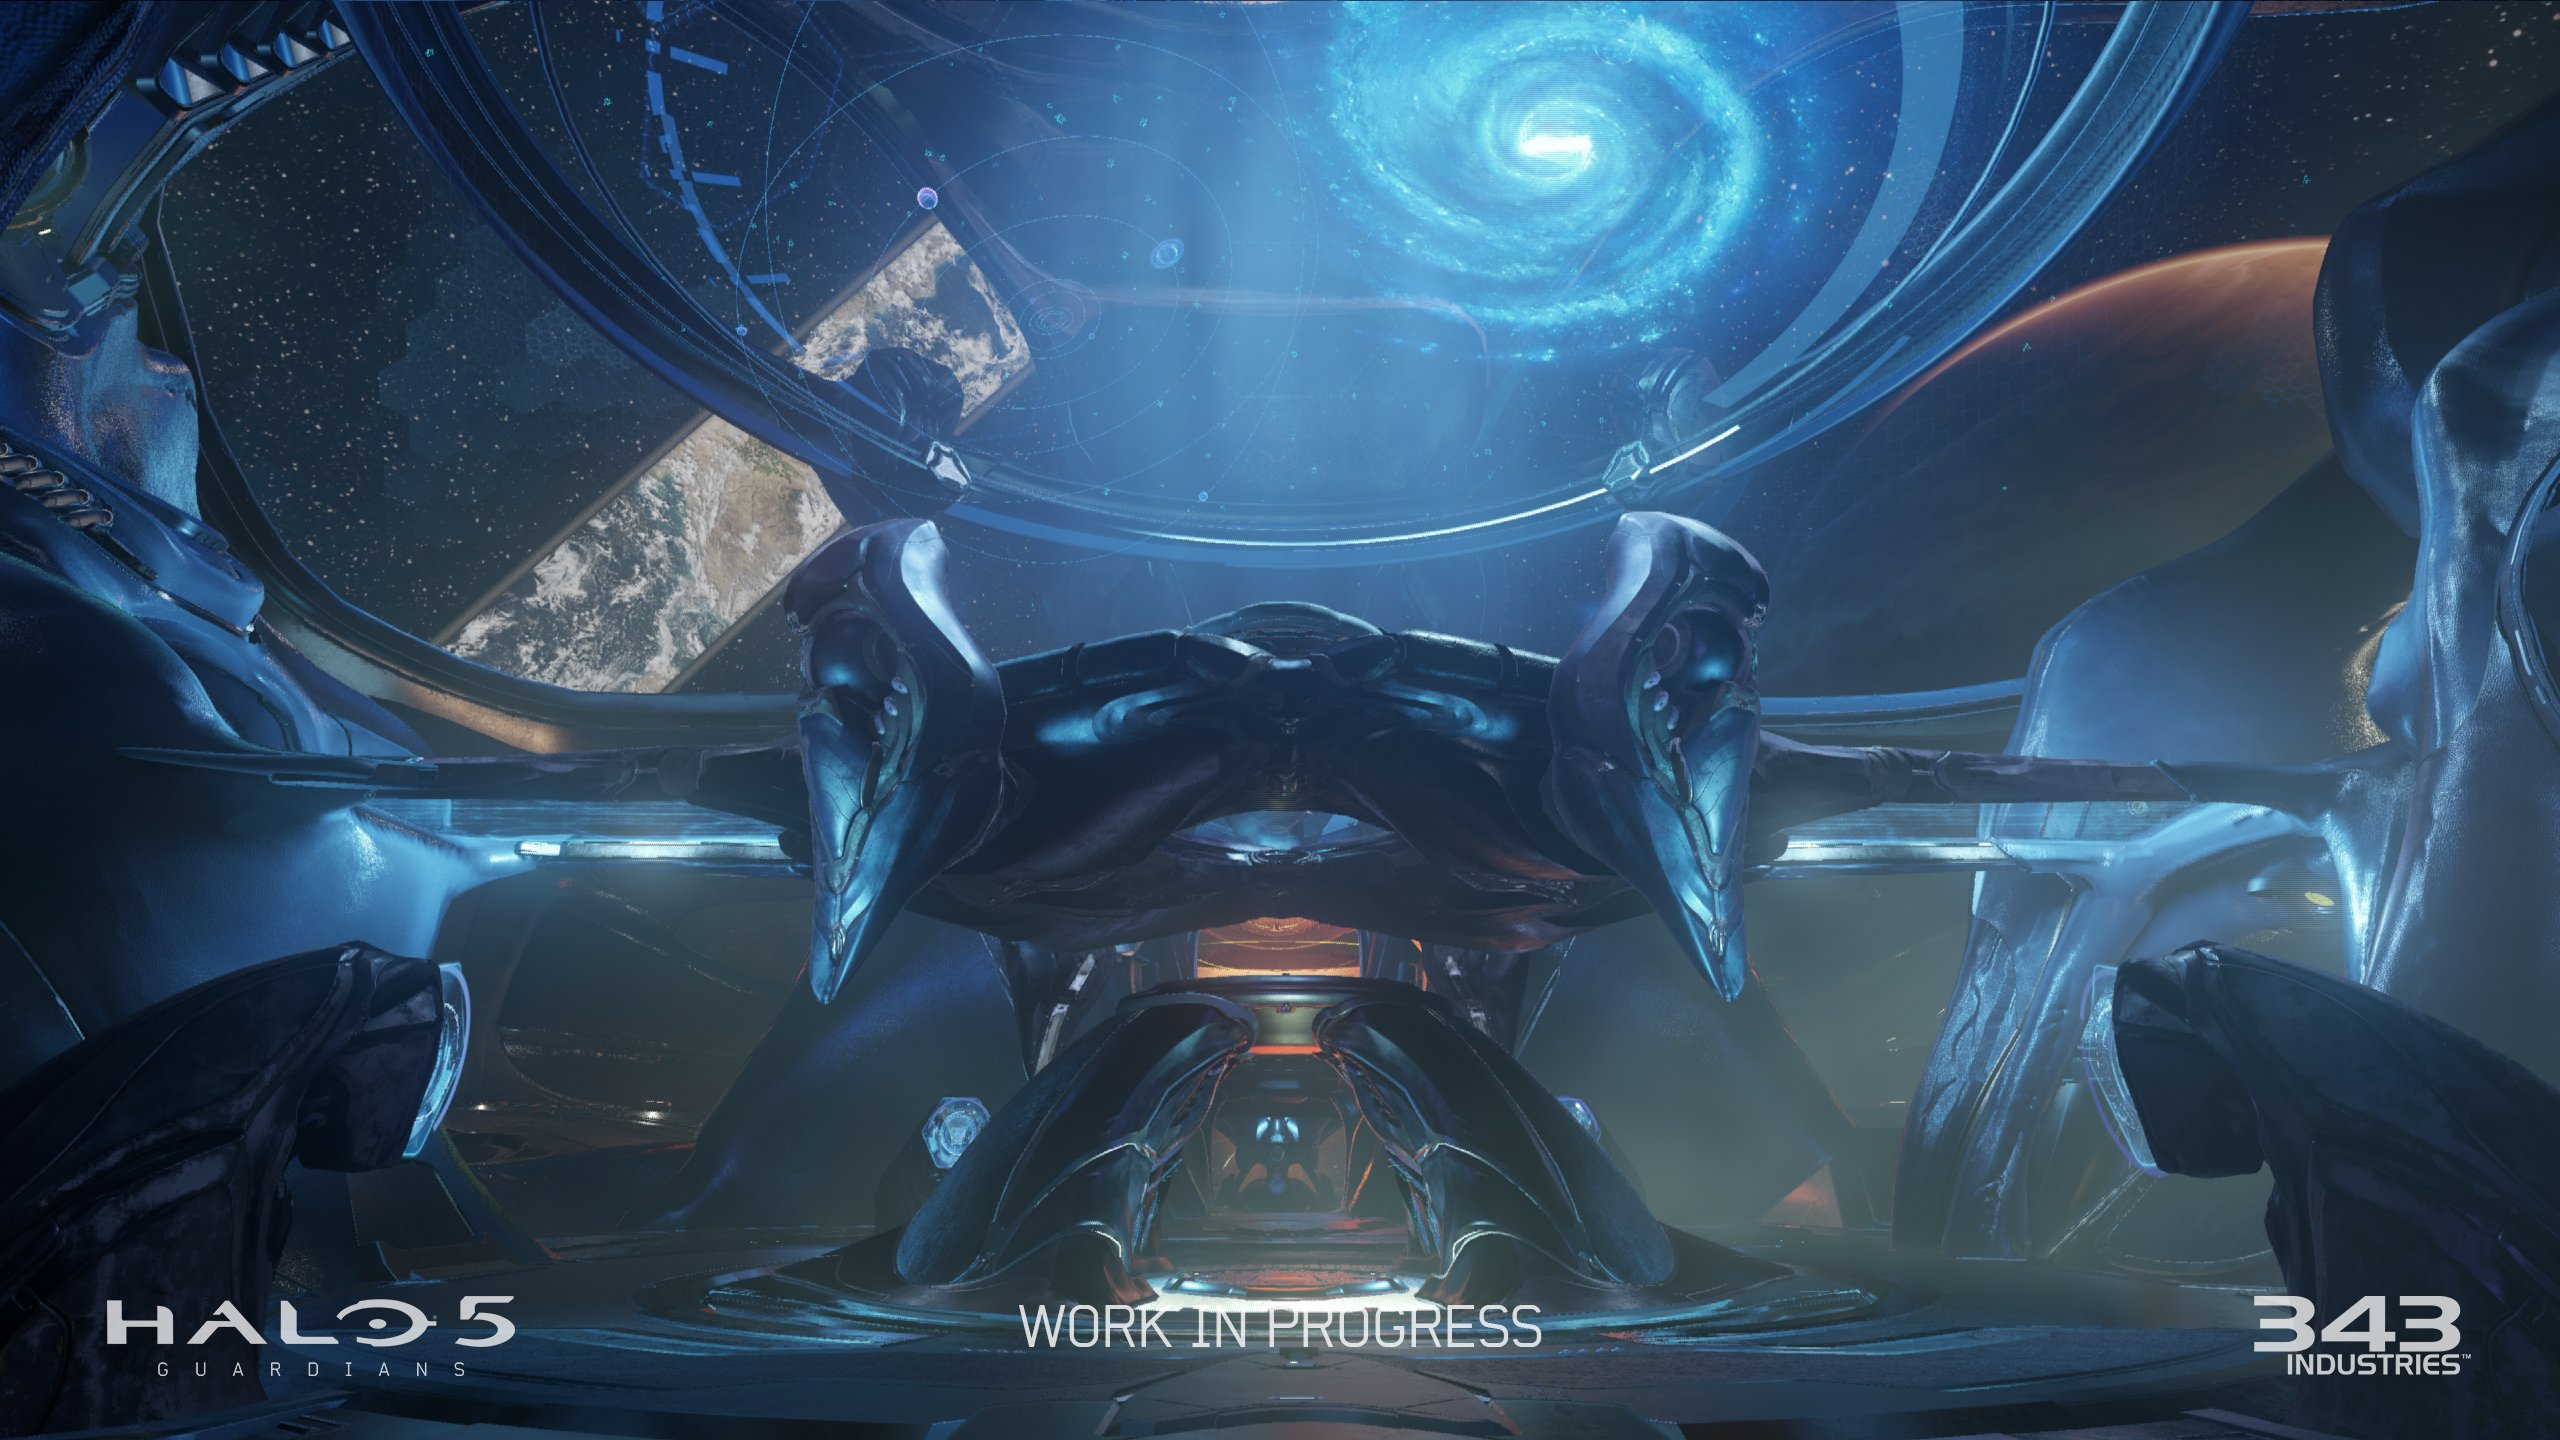 Halo 5 Guardians Computer Wallpapers Desktop Backgrounds 2560x1440 2560x1440